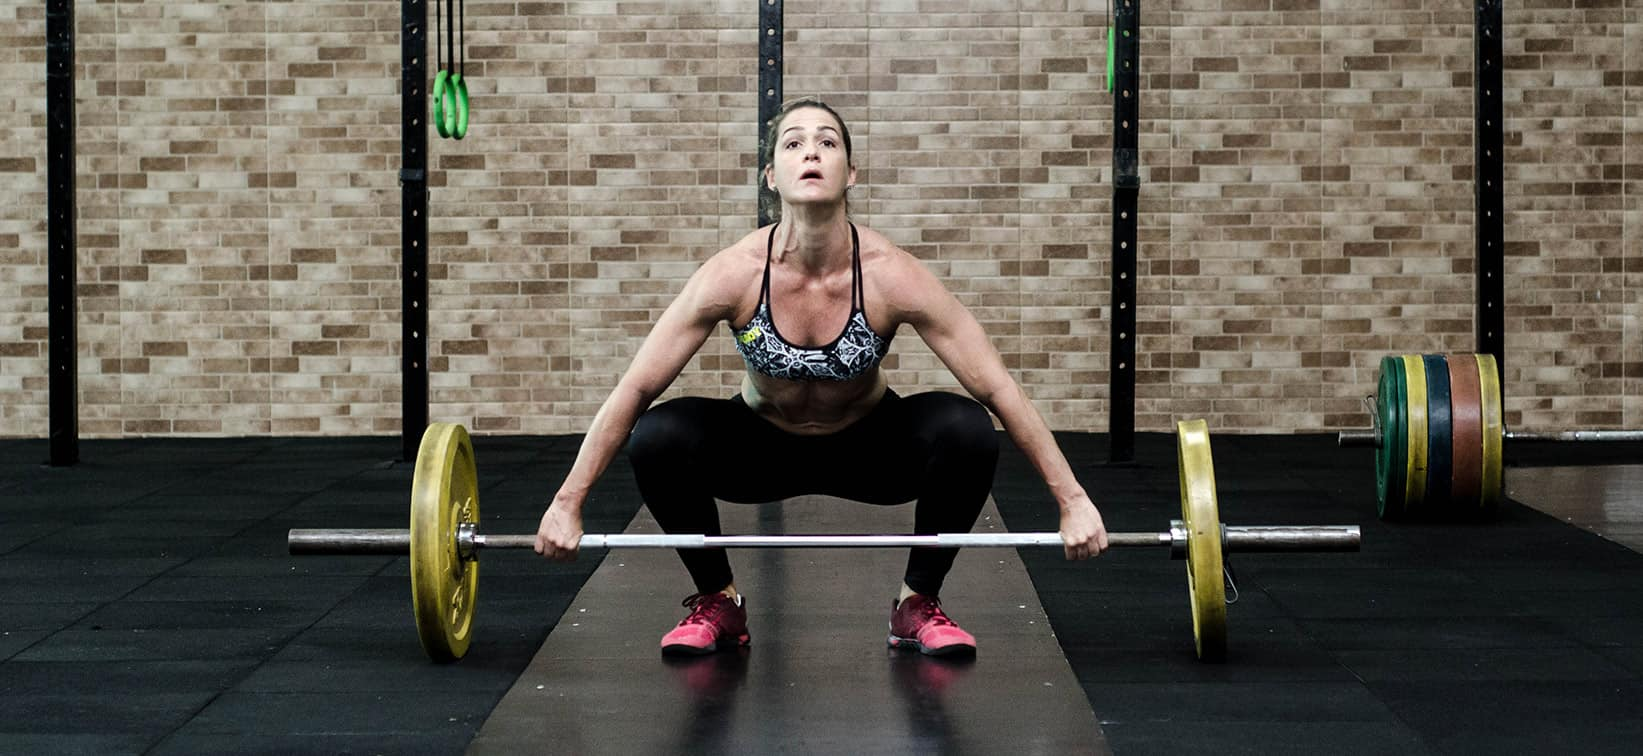 Snatch - an olympic weightlifting exercise performed with a barbell.